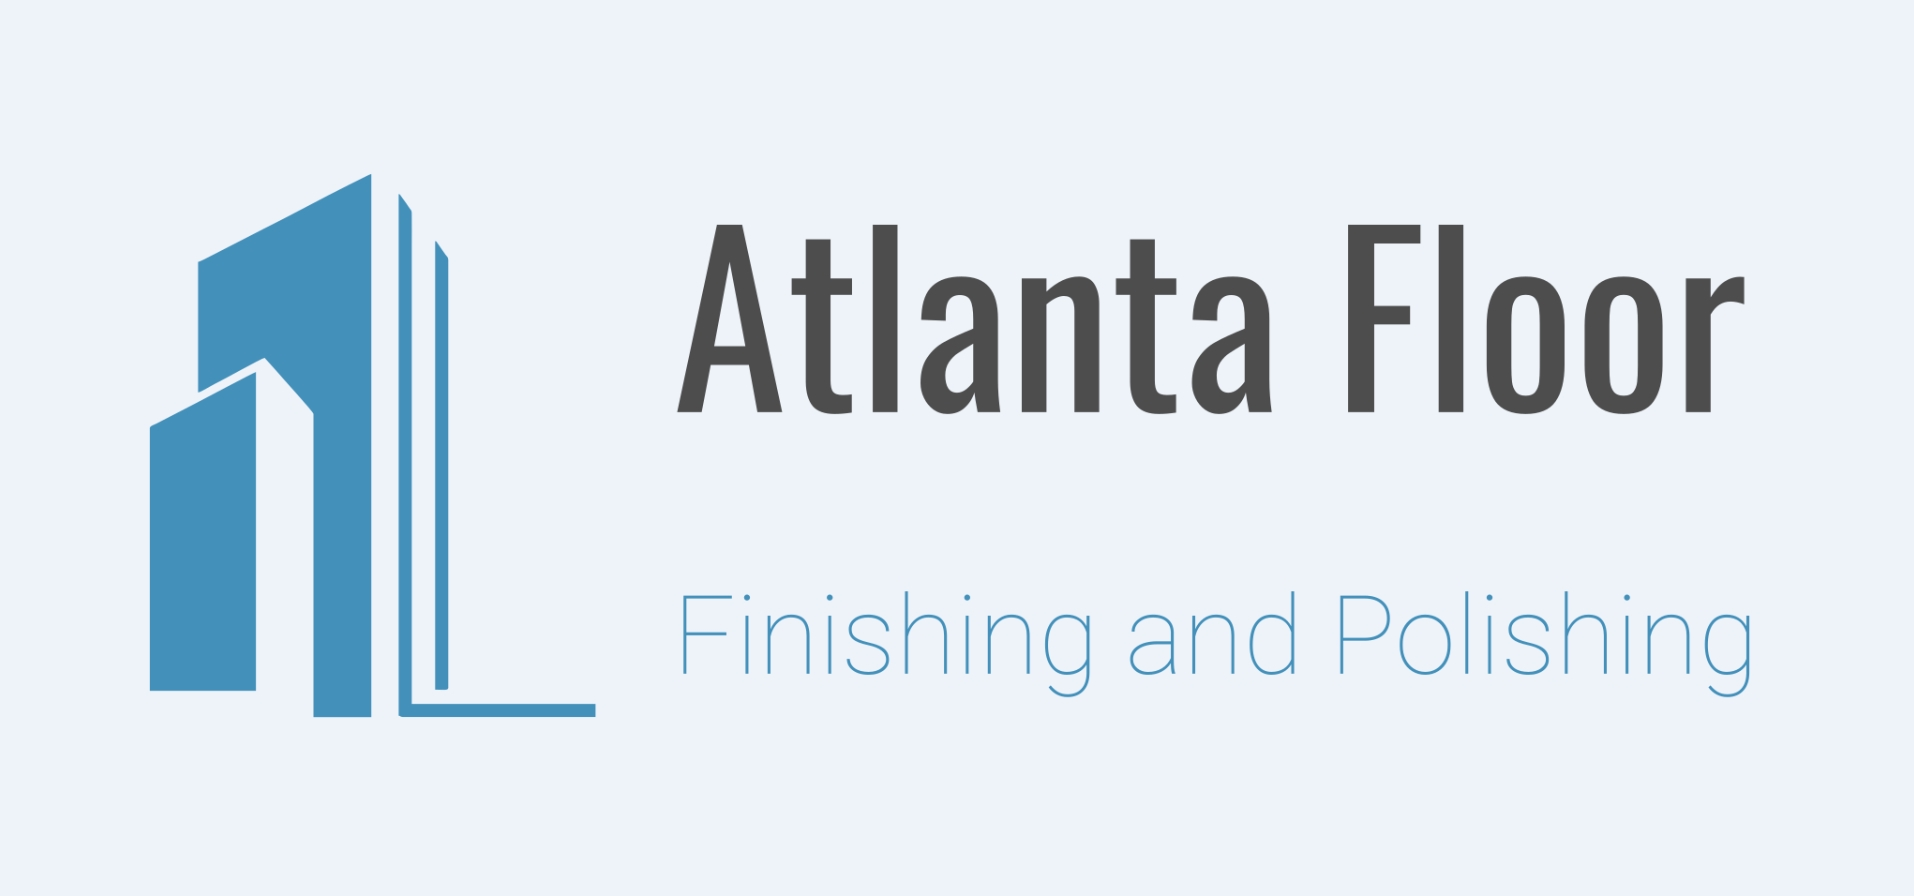 Atlanta Floor Finishing & Polishing Llc